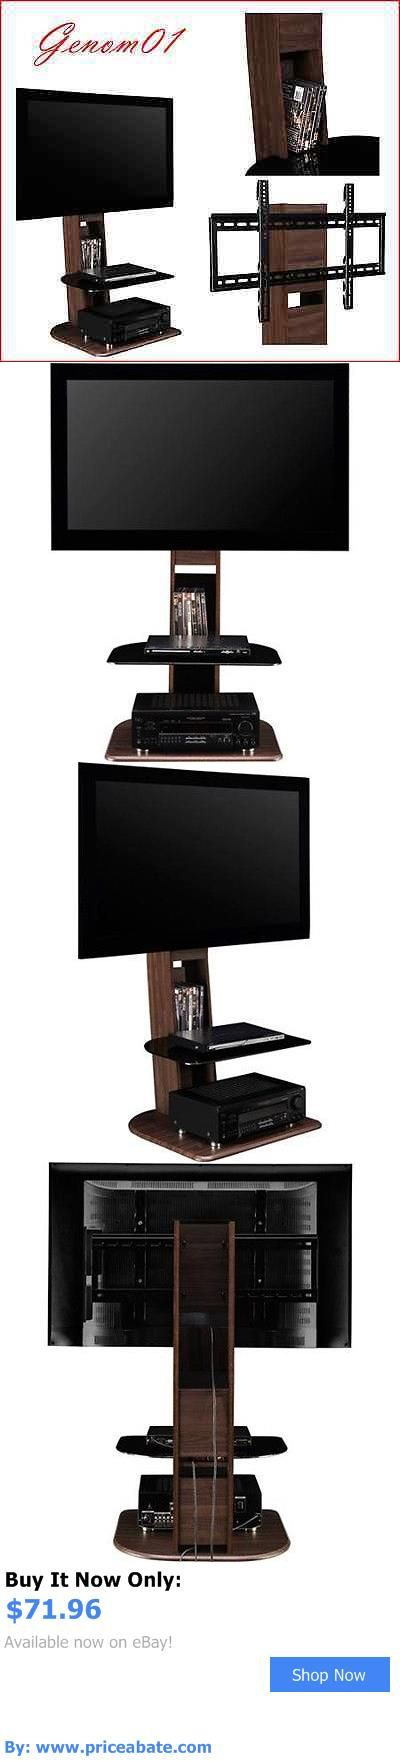 Entertainment Units TV Stands: Tv Stand With Mount For Tvs Up To 50 Entertainment Center W/ Shelf Space Saver BUY IT NOW ONLY: $71.96 #priceabateEntertainmentUnitsTVStands OR #priceabate